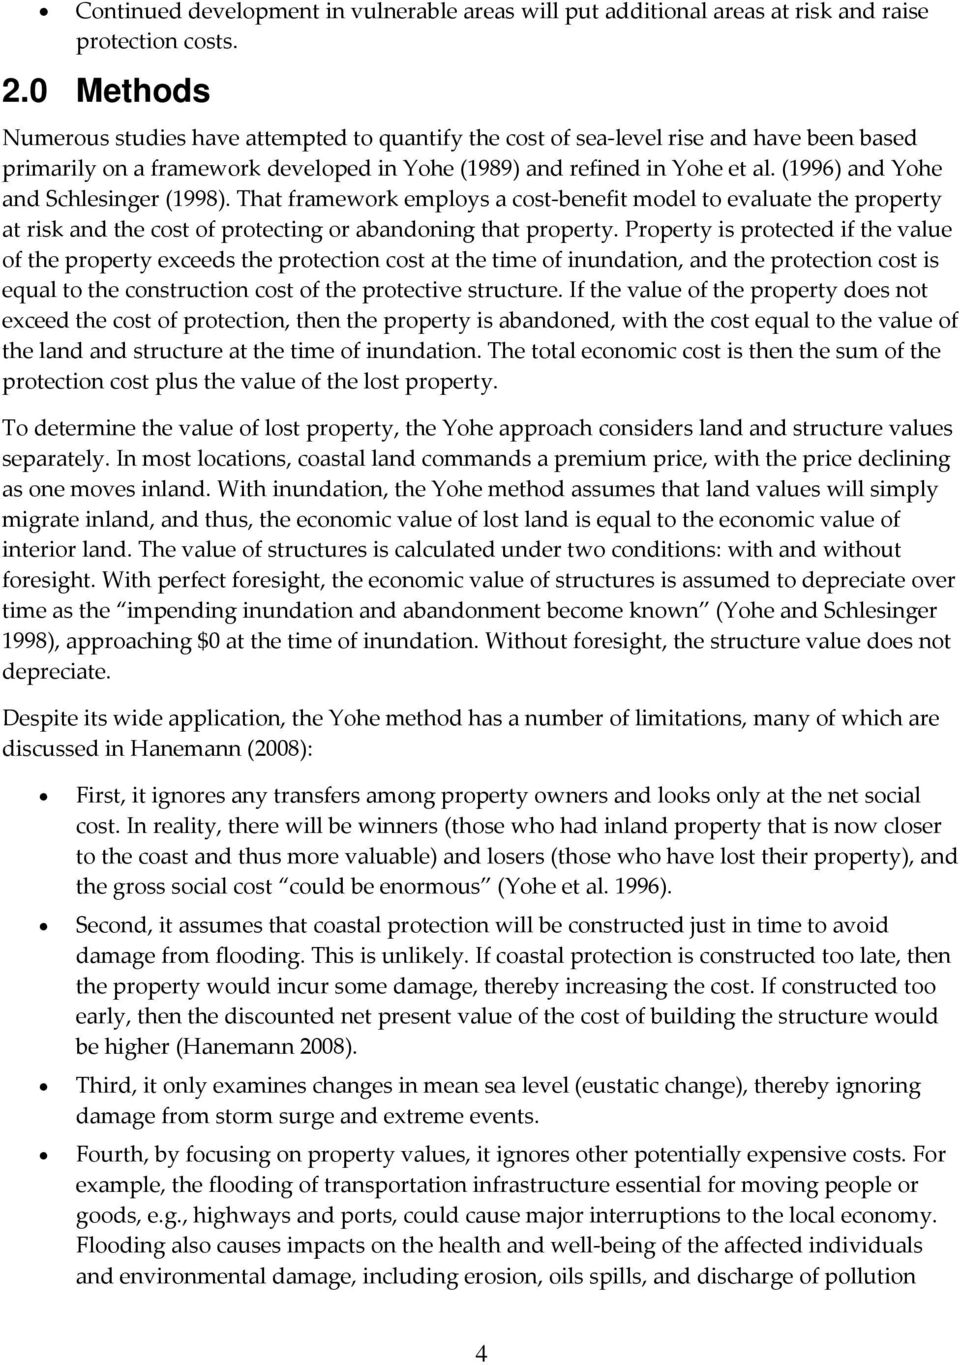 (1996) and Yohe and Schlesinger (1998). That framework employs a cost benefit model to evaluate the property at risk and the cost of protecting or abandoning that property.